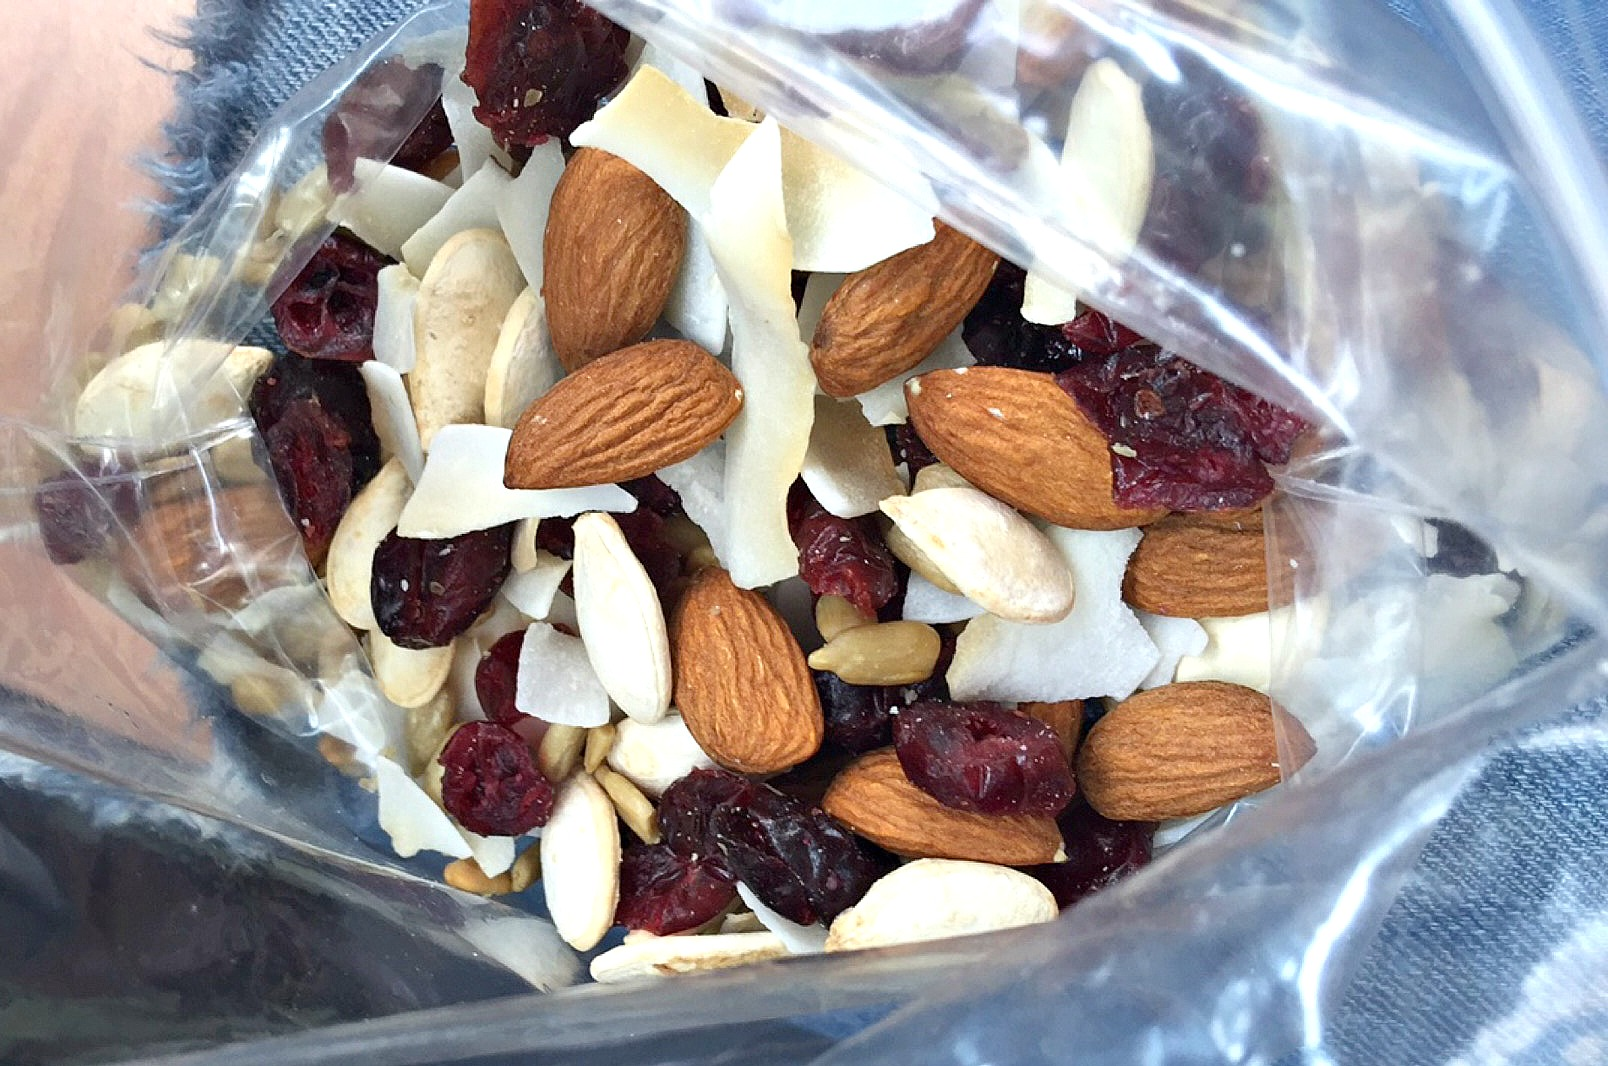 I made a little snack mix that had almonds, cranberries, sunflower seeds, toasted unsweetened coconut, pumpkin seeds and walnuts.